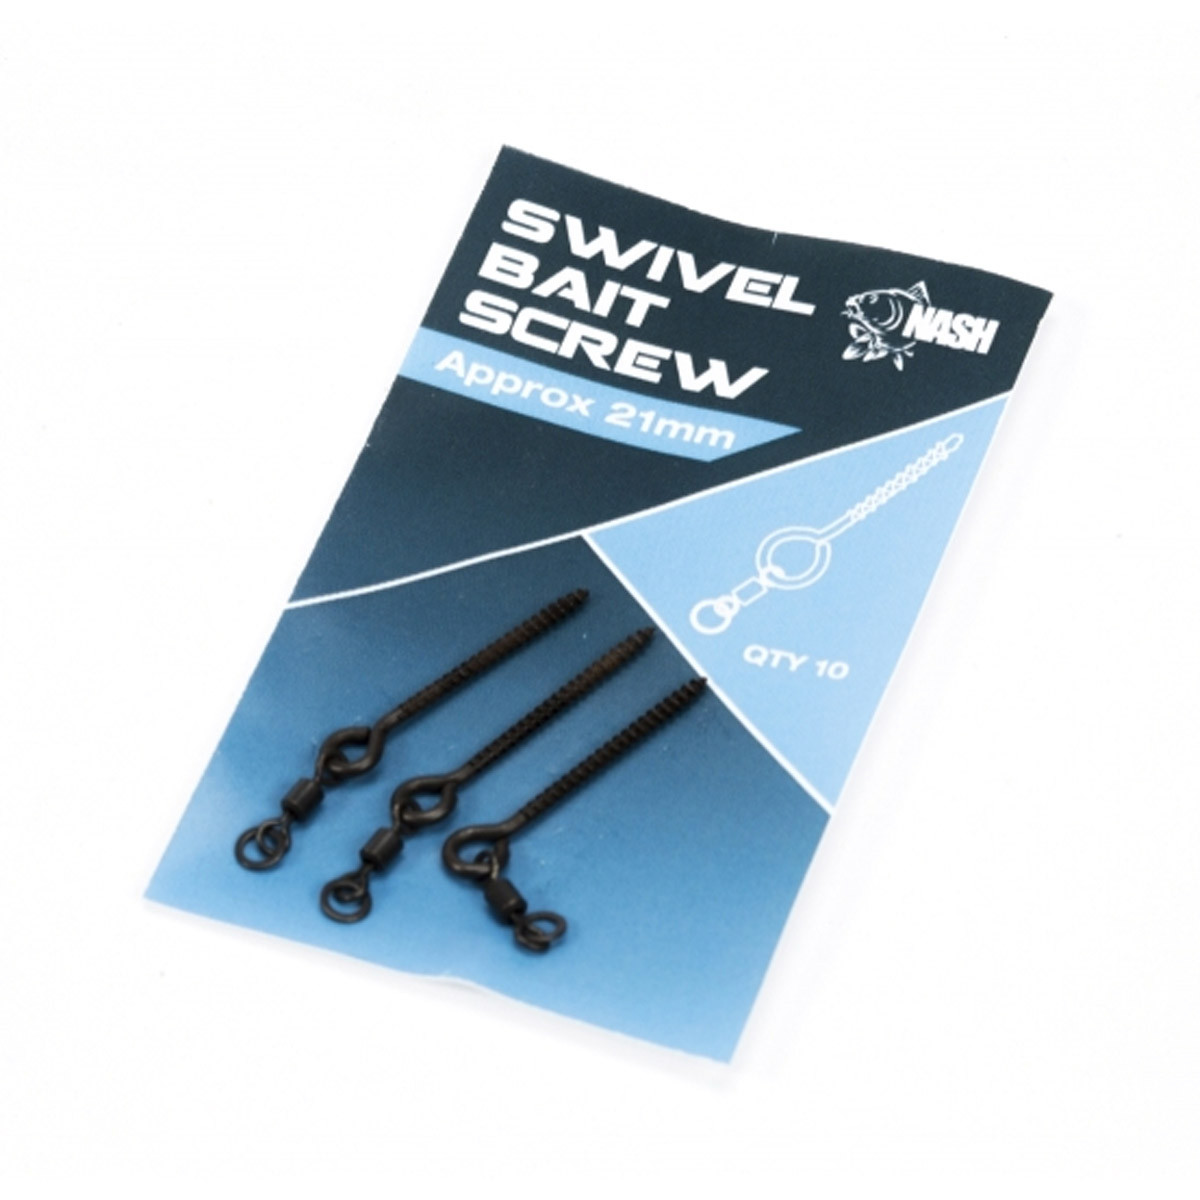 Nash 21mm metal bait screw +swivel